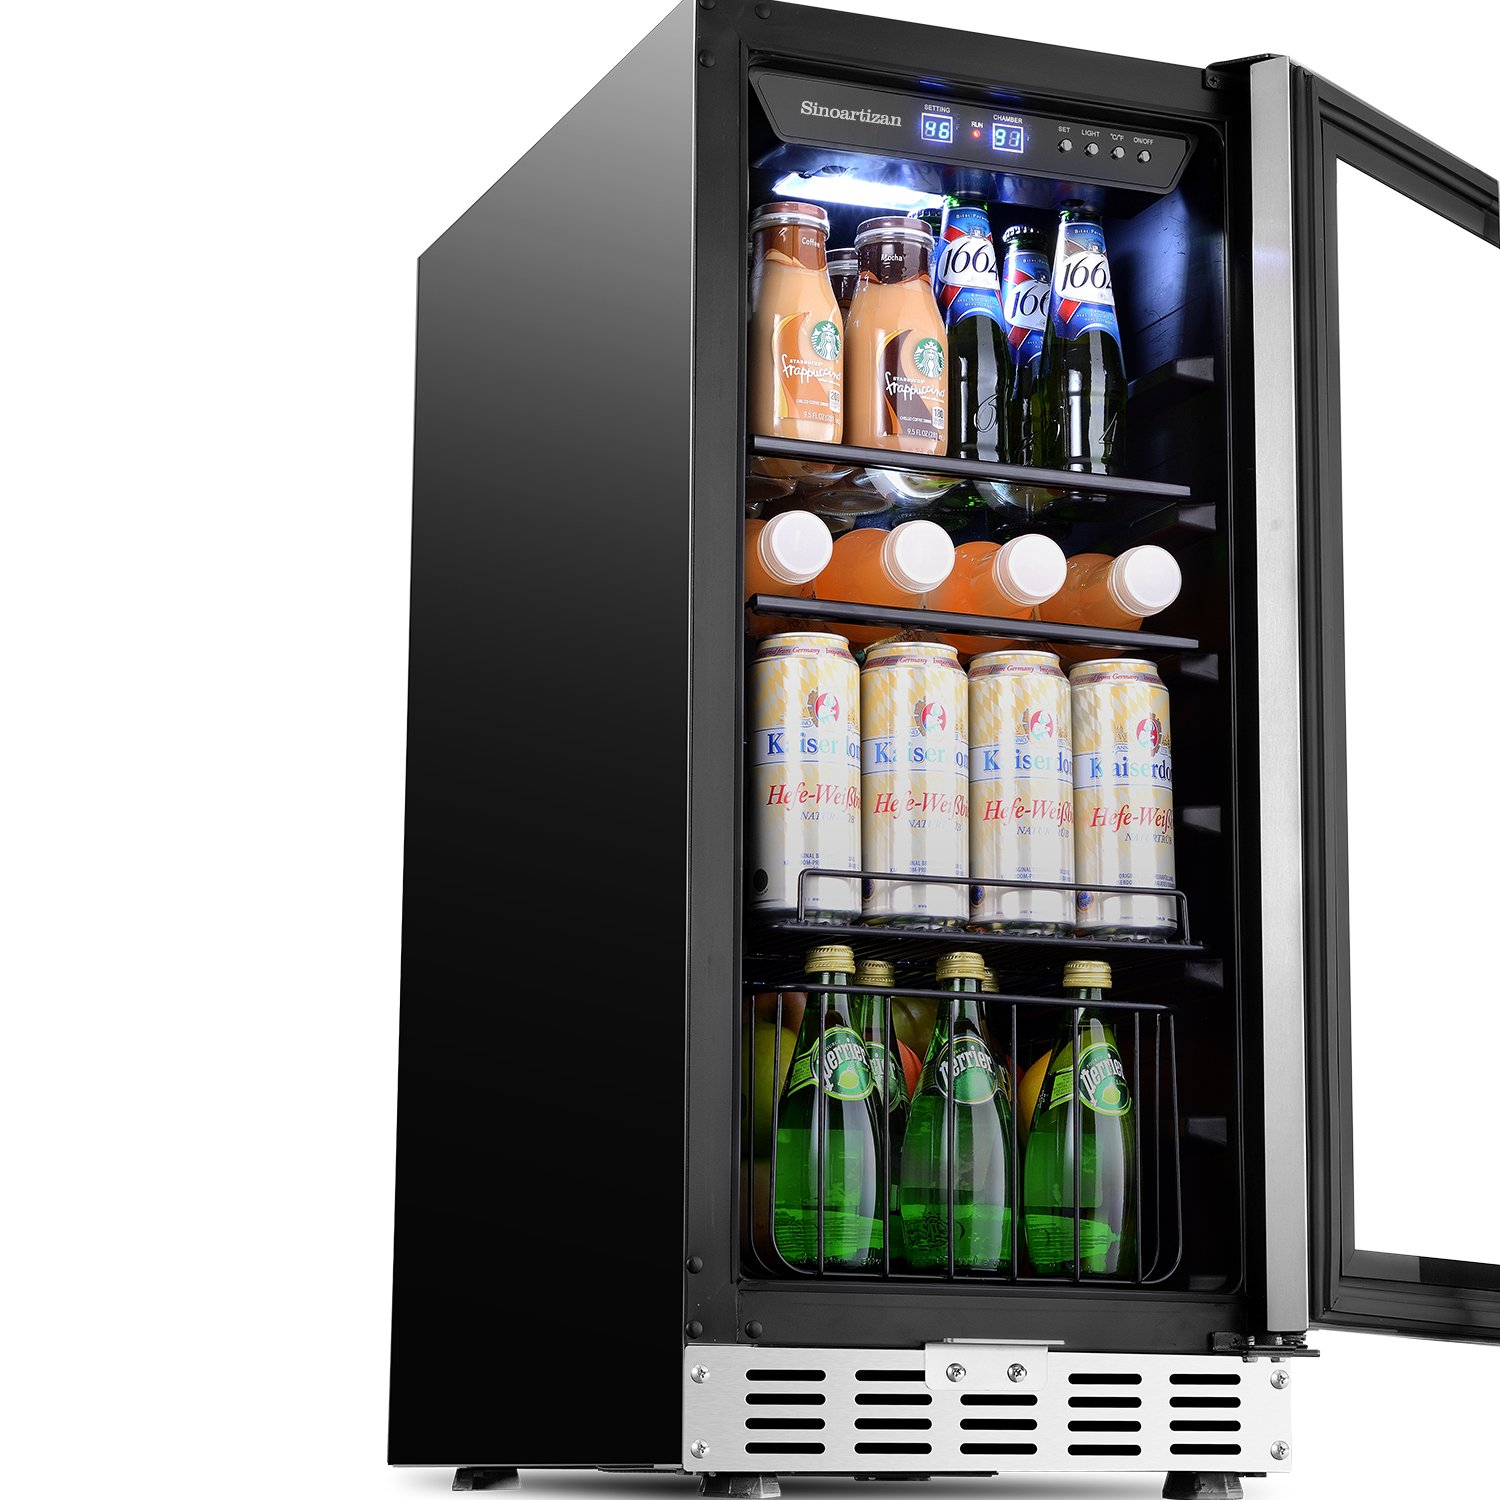 Beverage Cooler 15 Built In Or Freestanding Refrigerator With 3 Functional